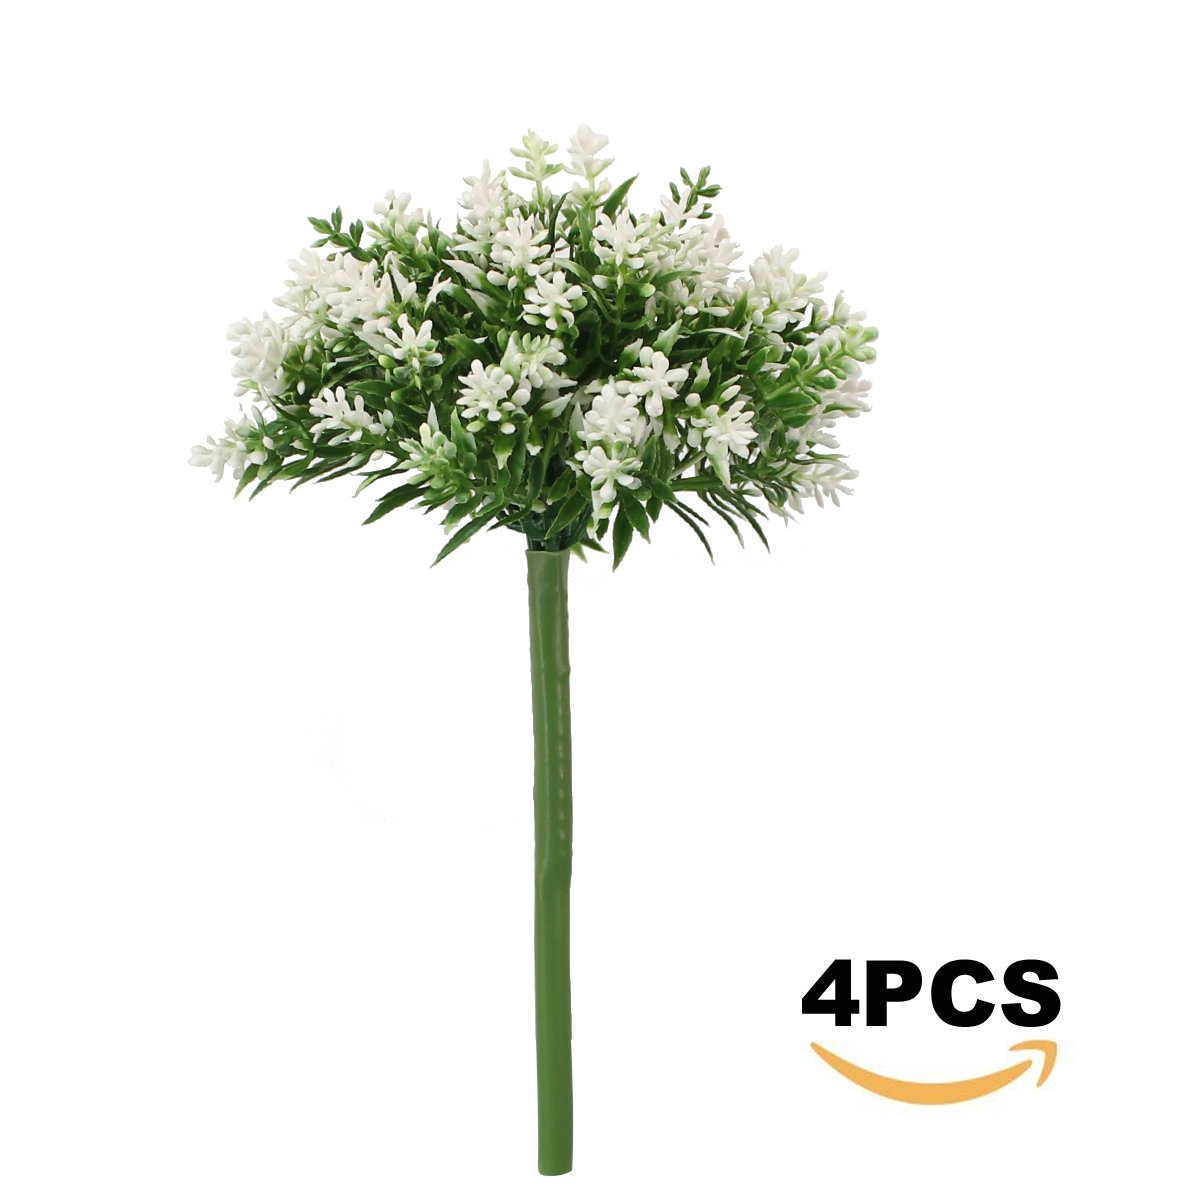 Greatflower Pack of 4 Plastic Artificial Flower Bouquet for Garden or Home Decoration